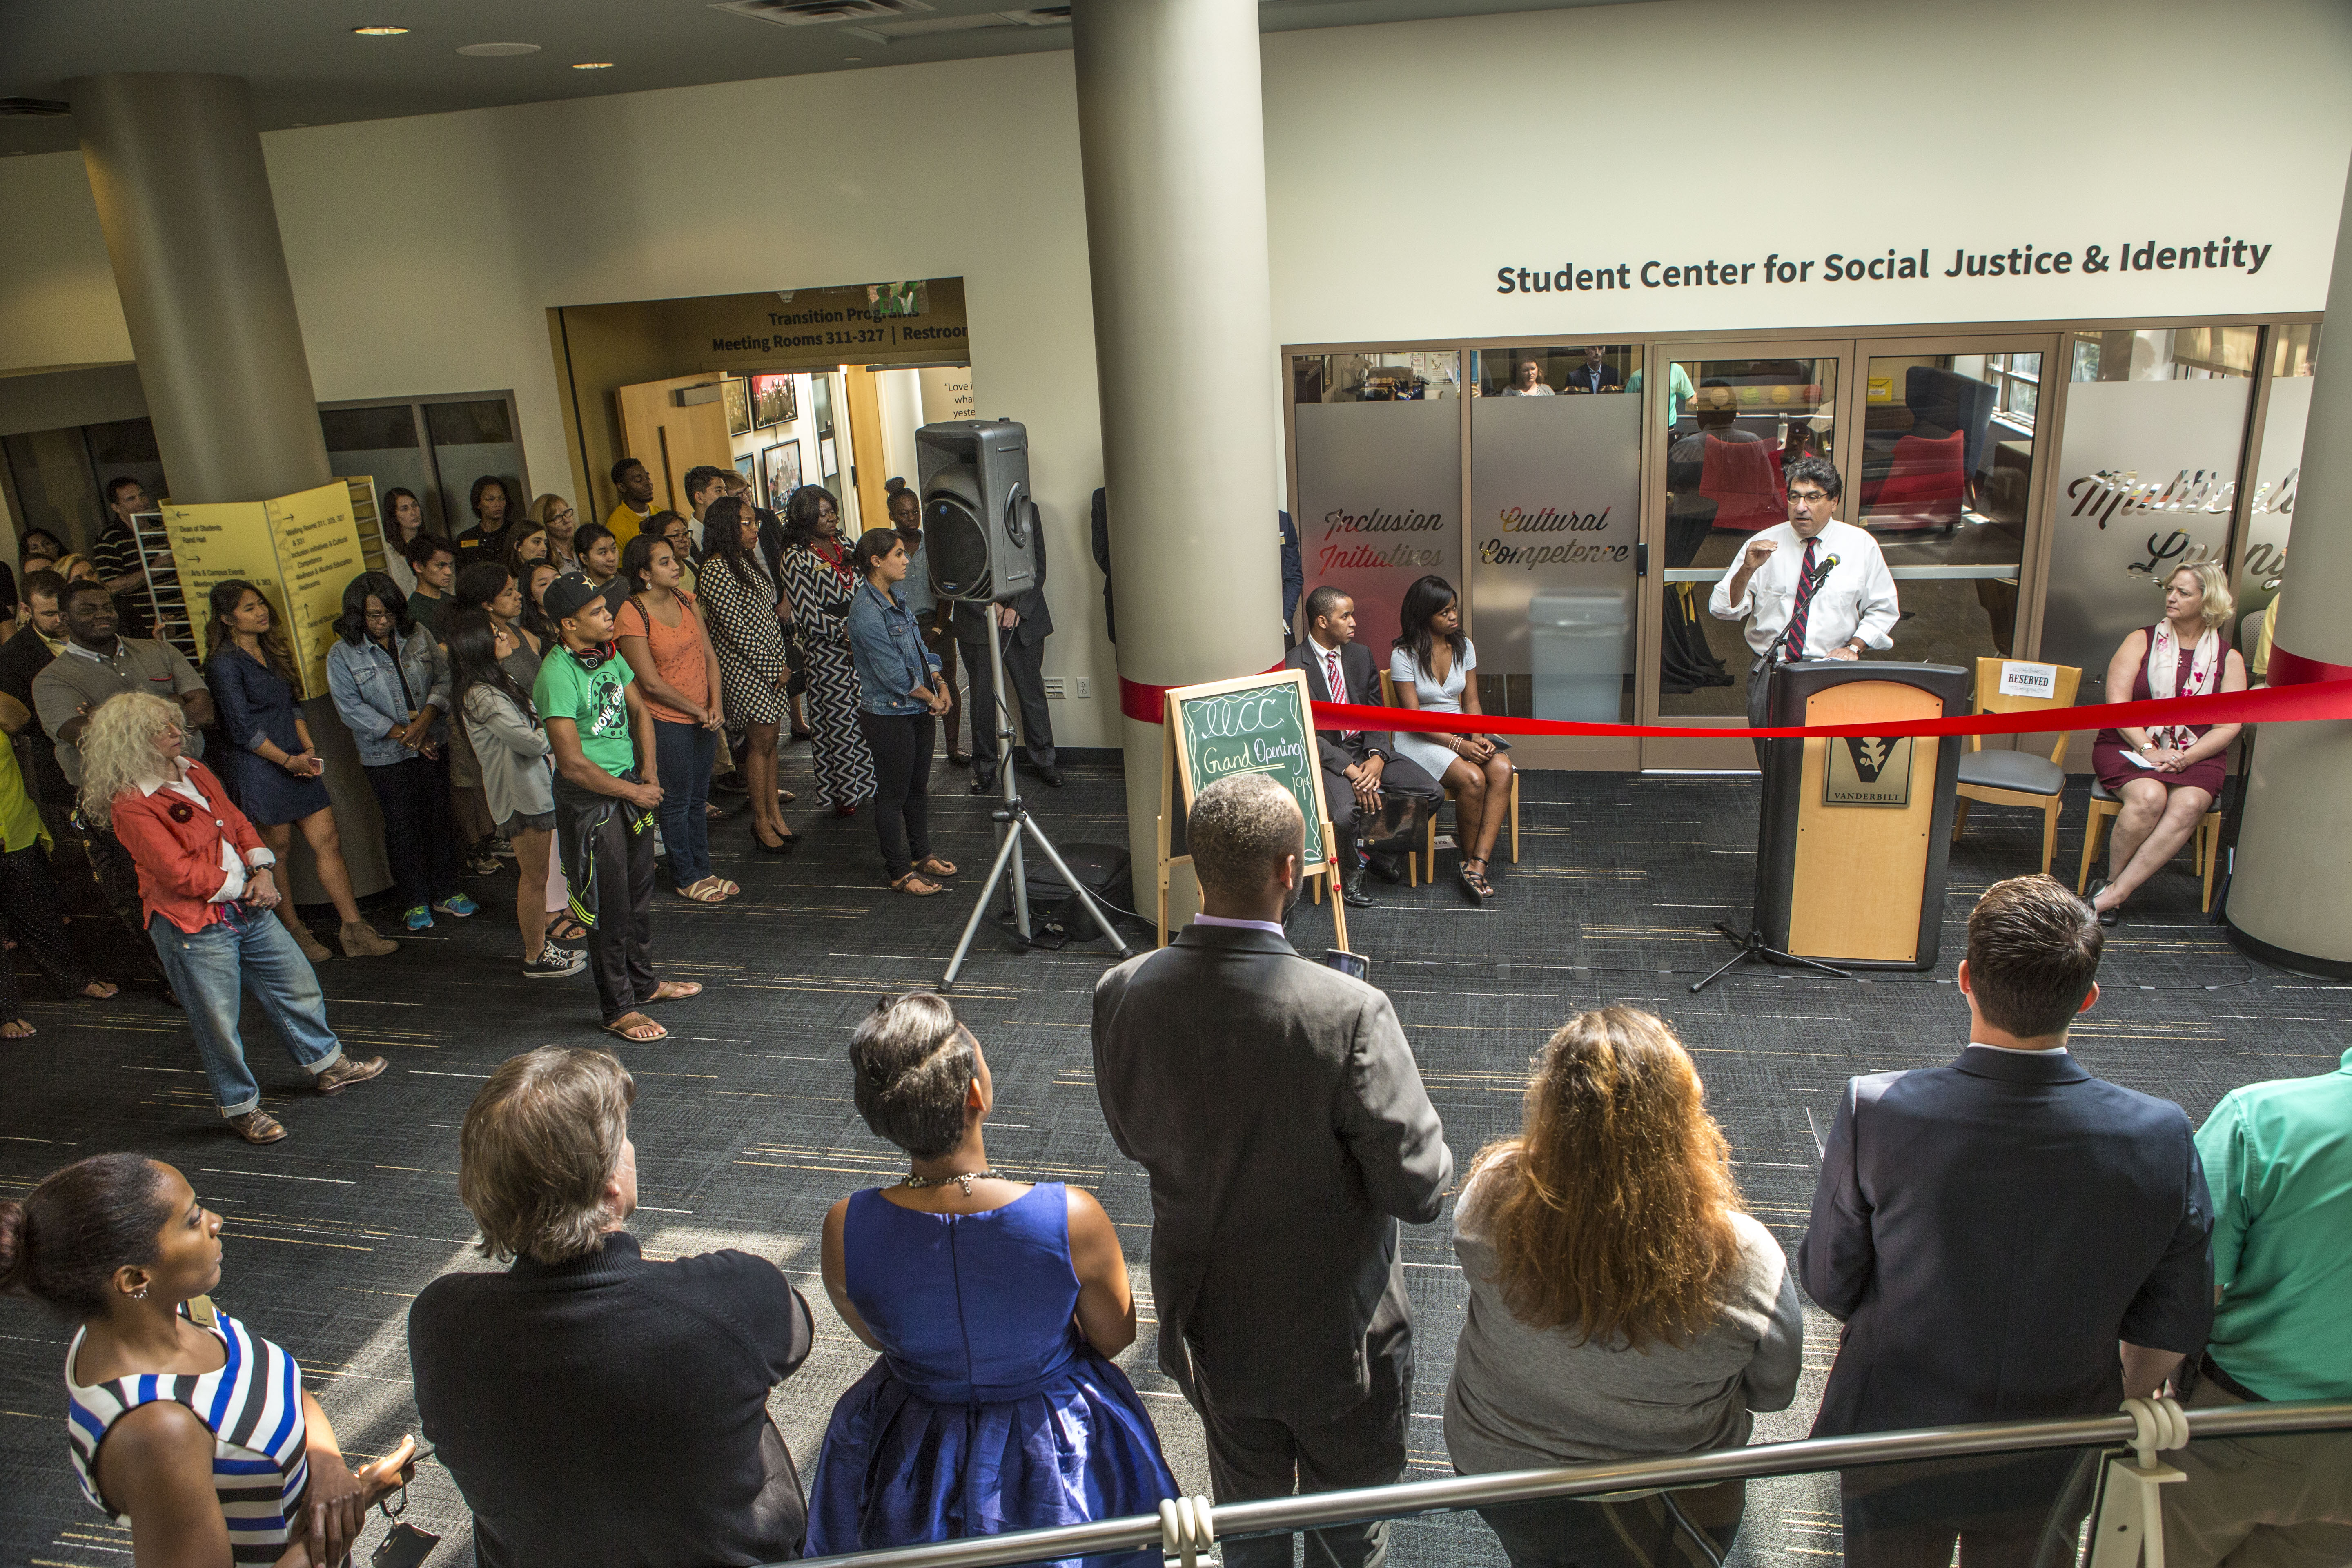 Chancellor Zeppos speaks at the Grand Opening of the Student Center for Social Justice & Identity.